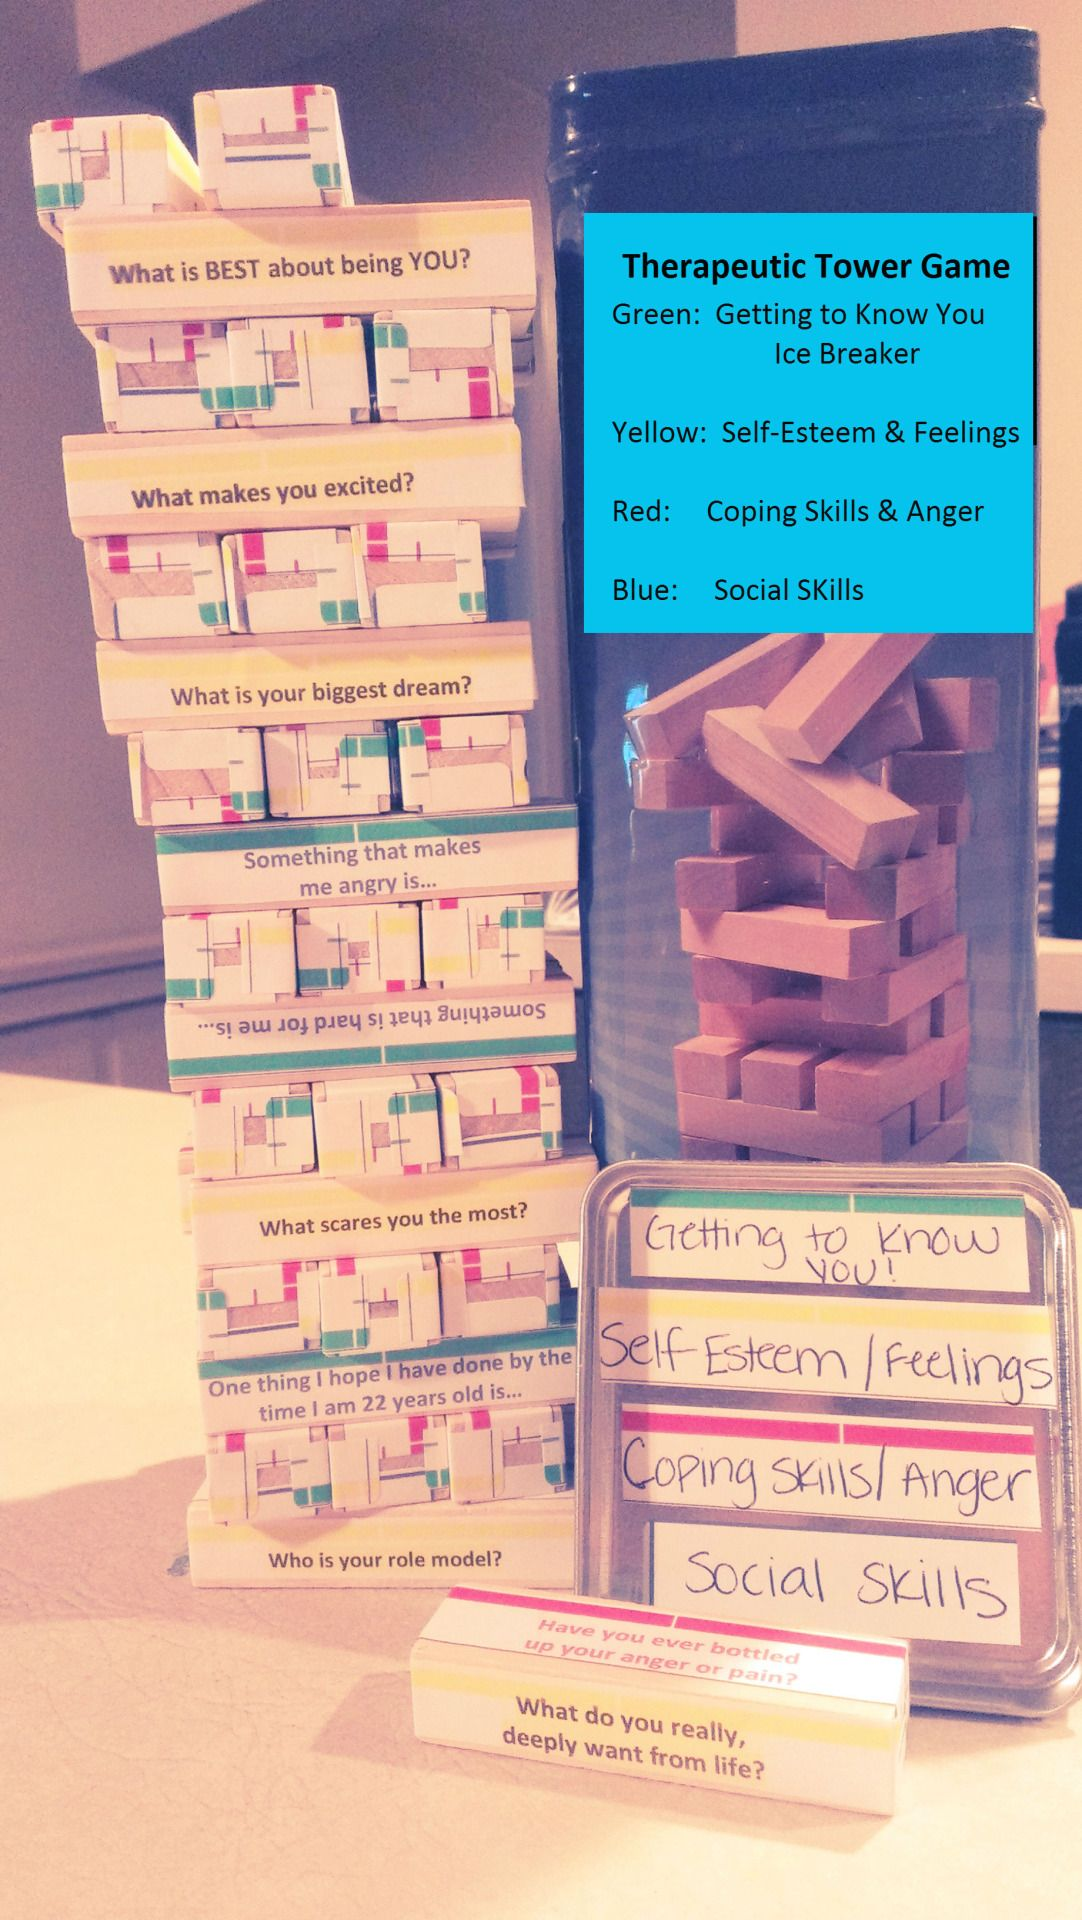 creative clinical social worker pinteres pinner says schoolsocialworkerblog i have searched and searched for printable jenga questions to use in social work sessions and found none